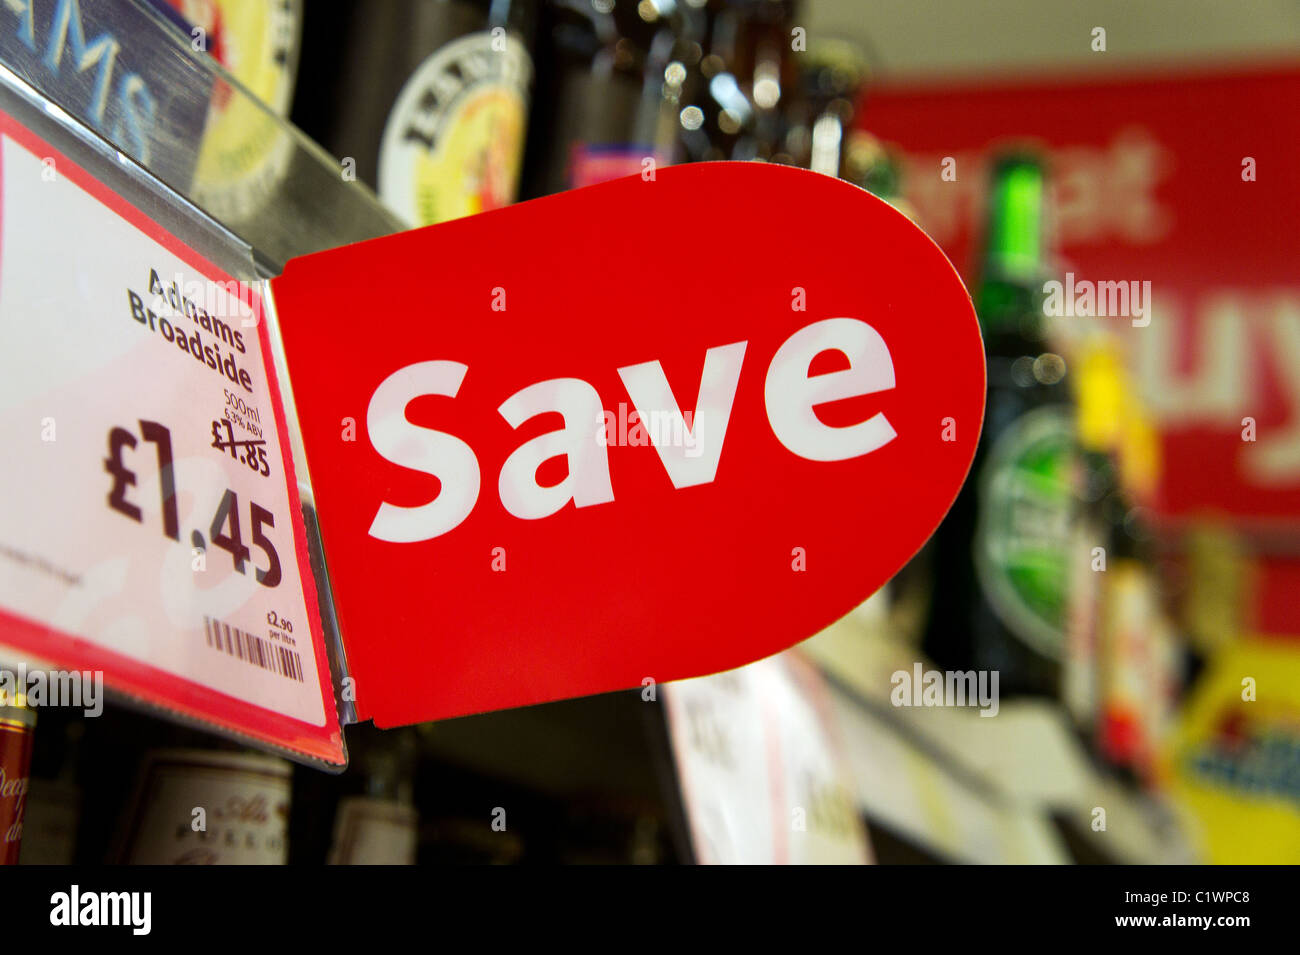 A save money sign in a uk supermarket - Stock Image